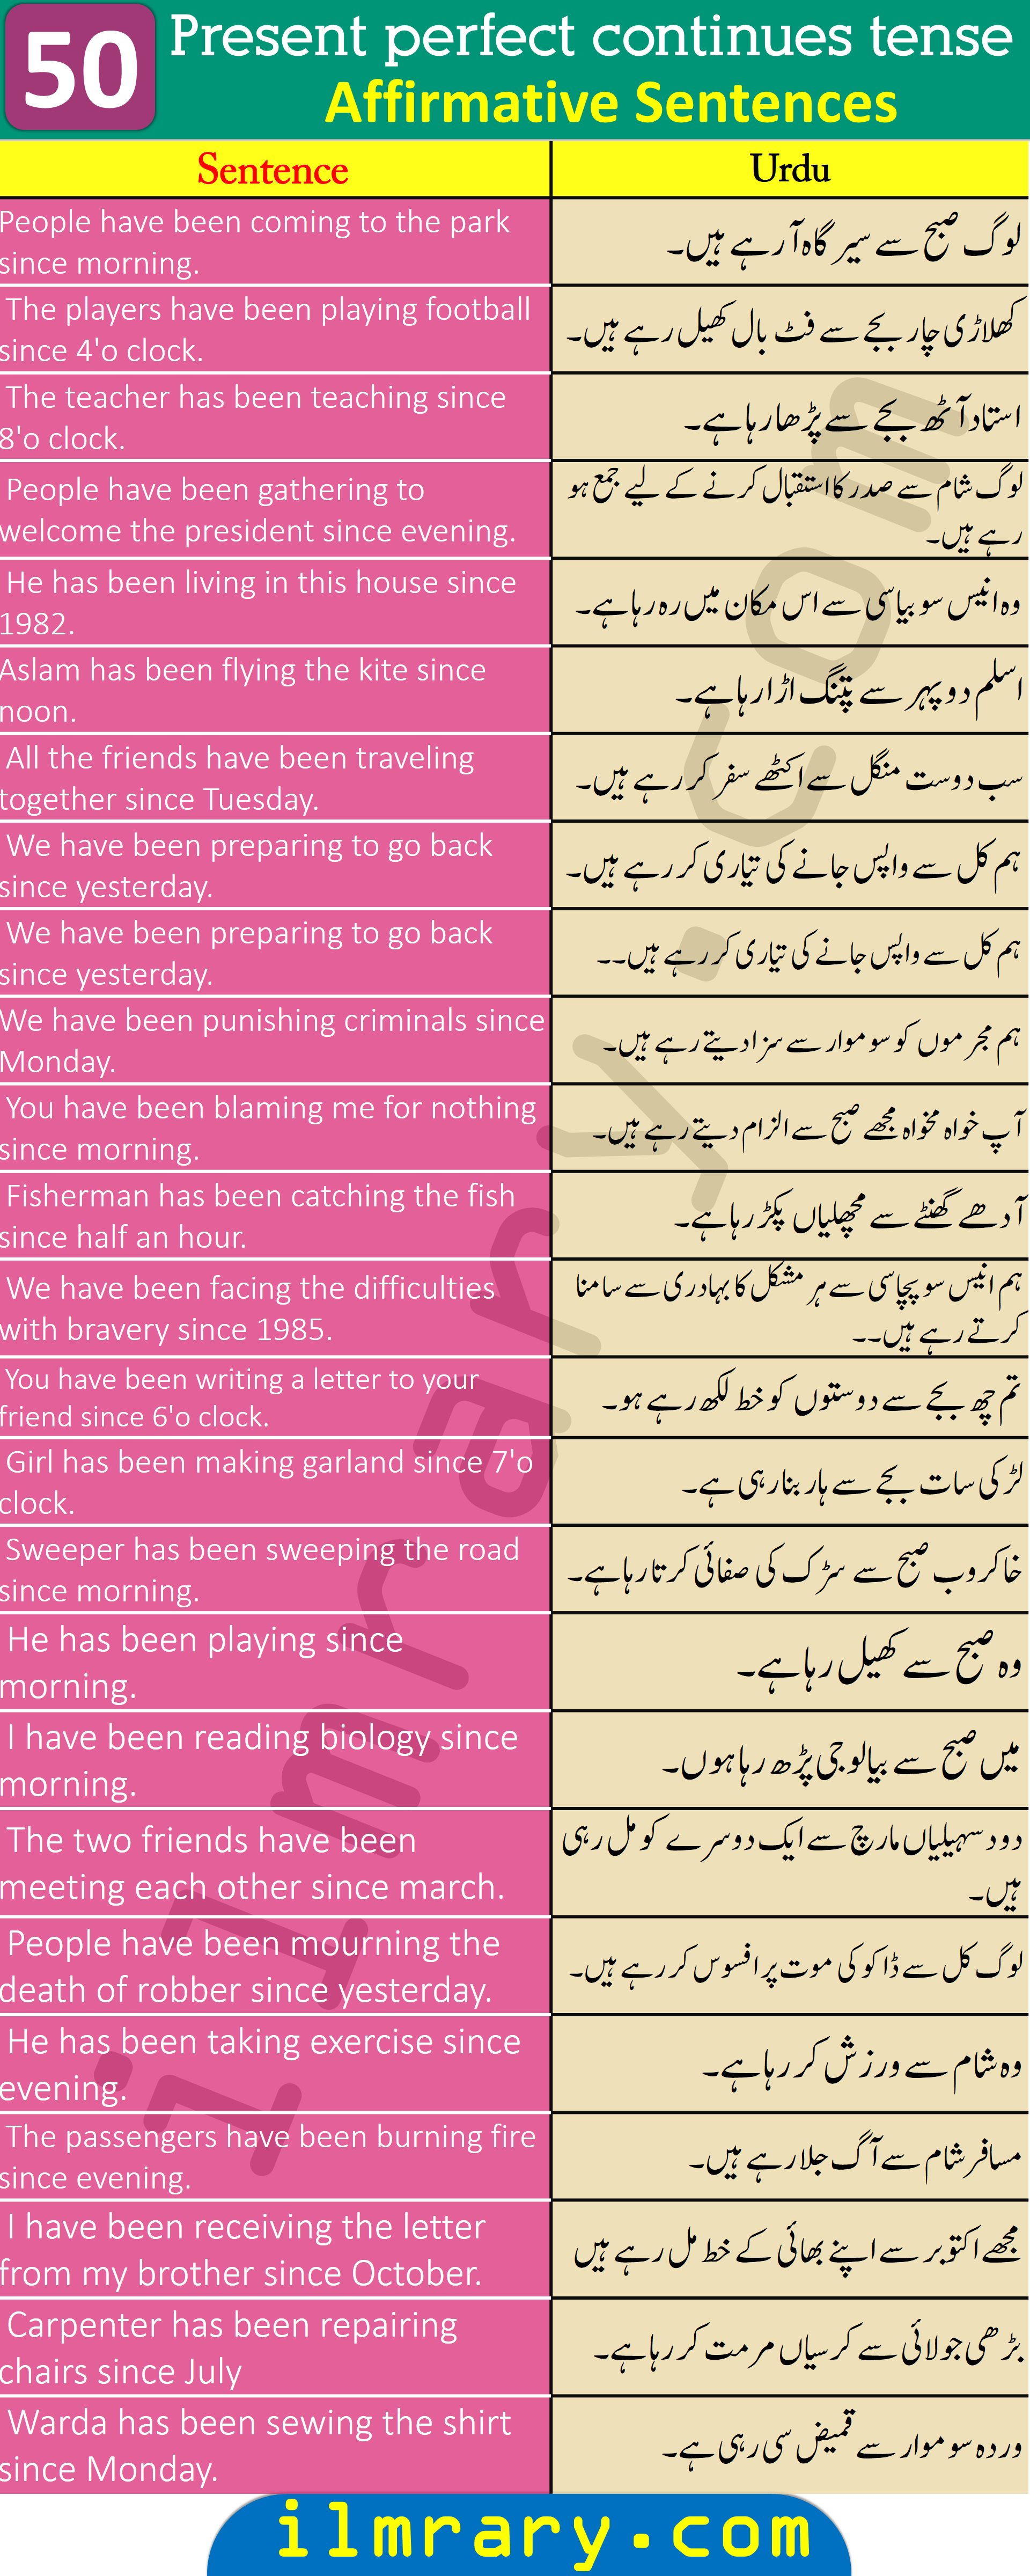 150 Example Sentences for Present Perfect Continuous Tense with Urdu Translation